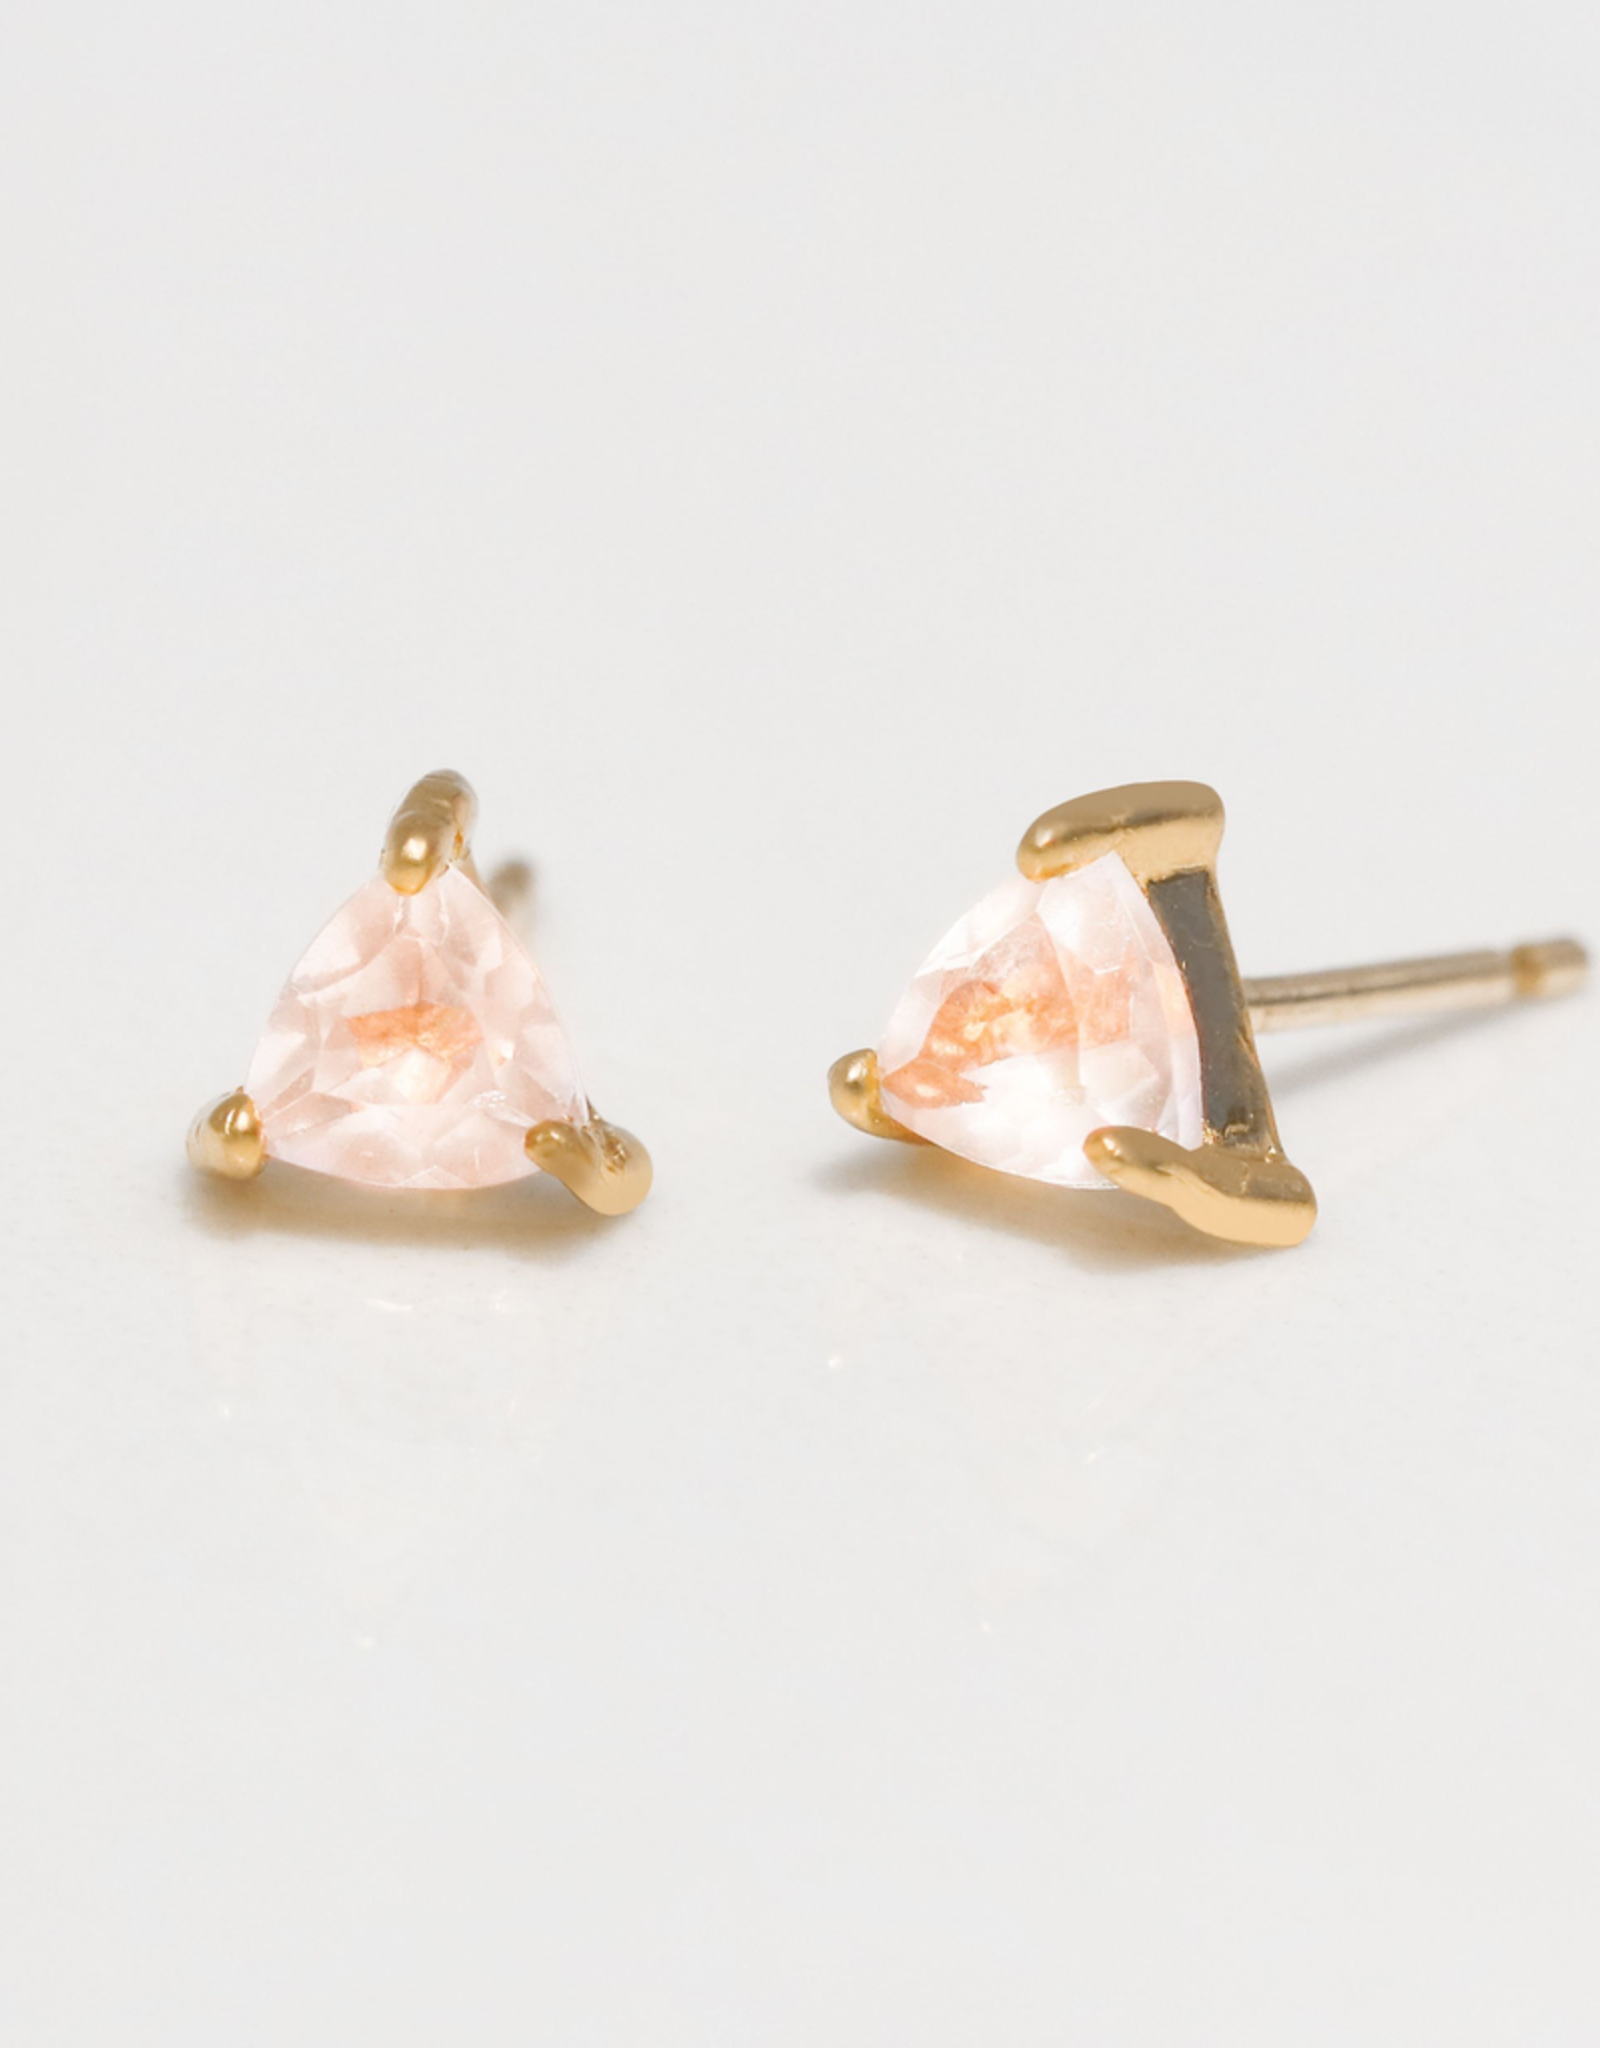 Earrings, MIni Energy Gem, Rose Quartz, Sterling Silver Base with18k Gold Plating